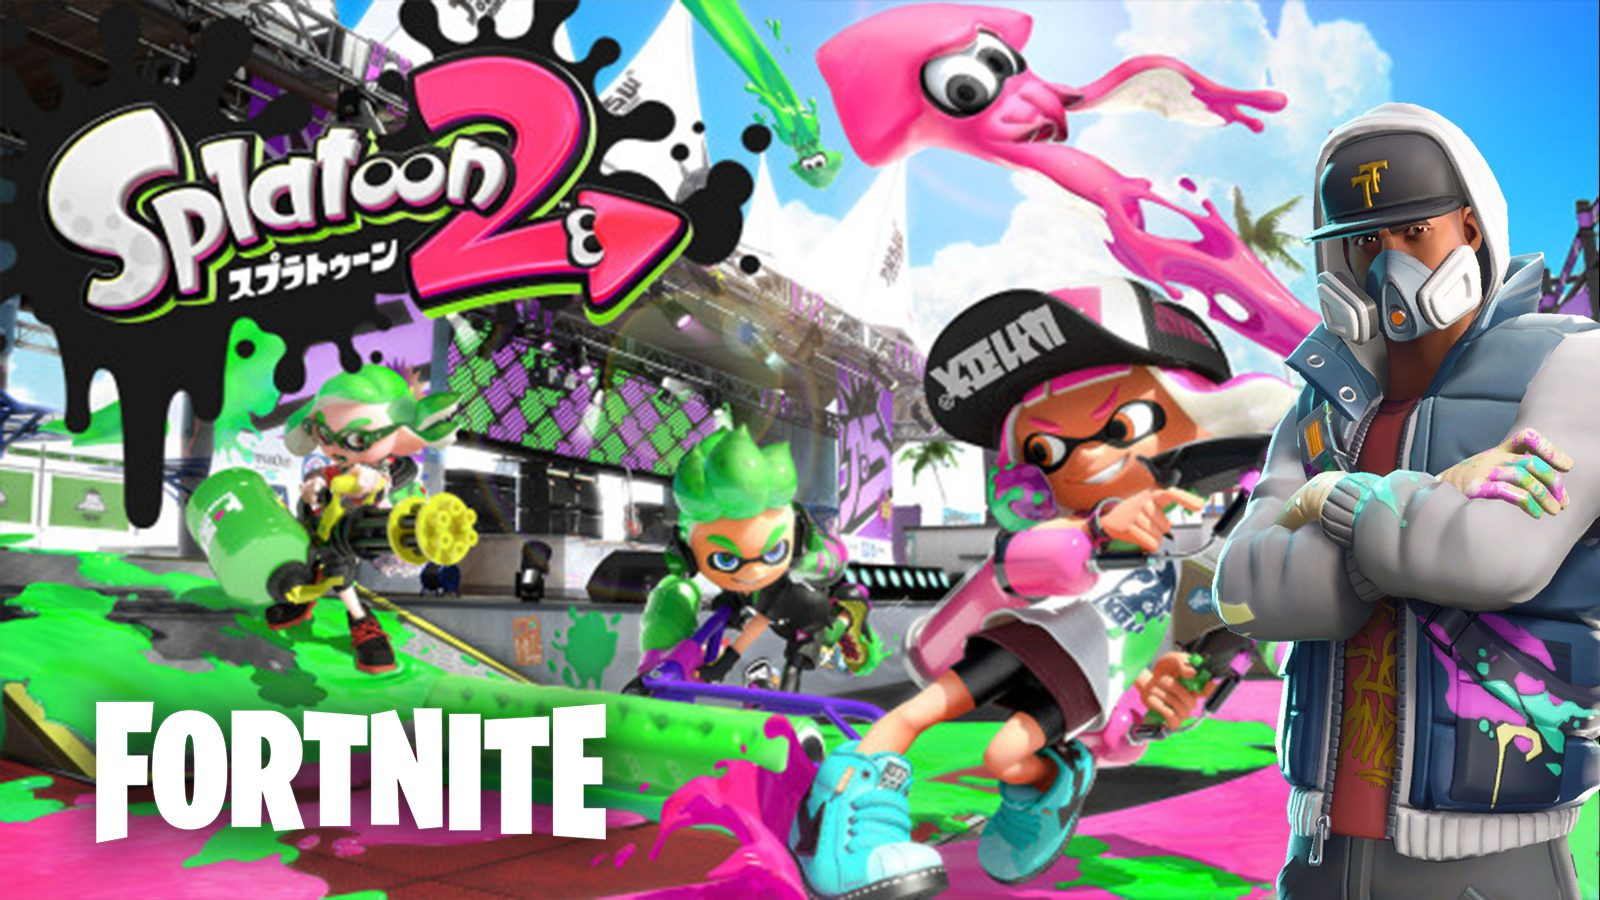 Leaked Fortnite X Splatoon Files Reveal Next Crossover Event Dexerto Some events involve turning off shooting, so everyone can enjoy the event. leaked fortnite x splatoon files reveal